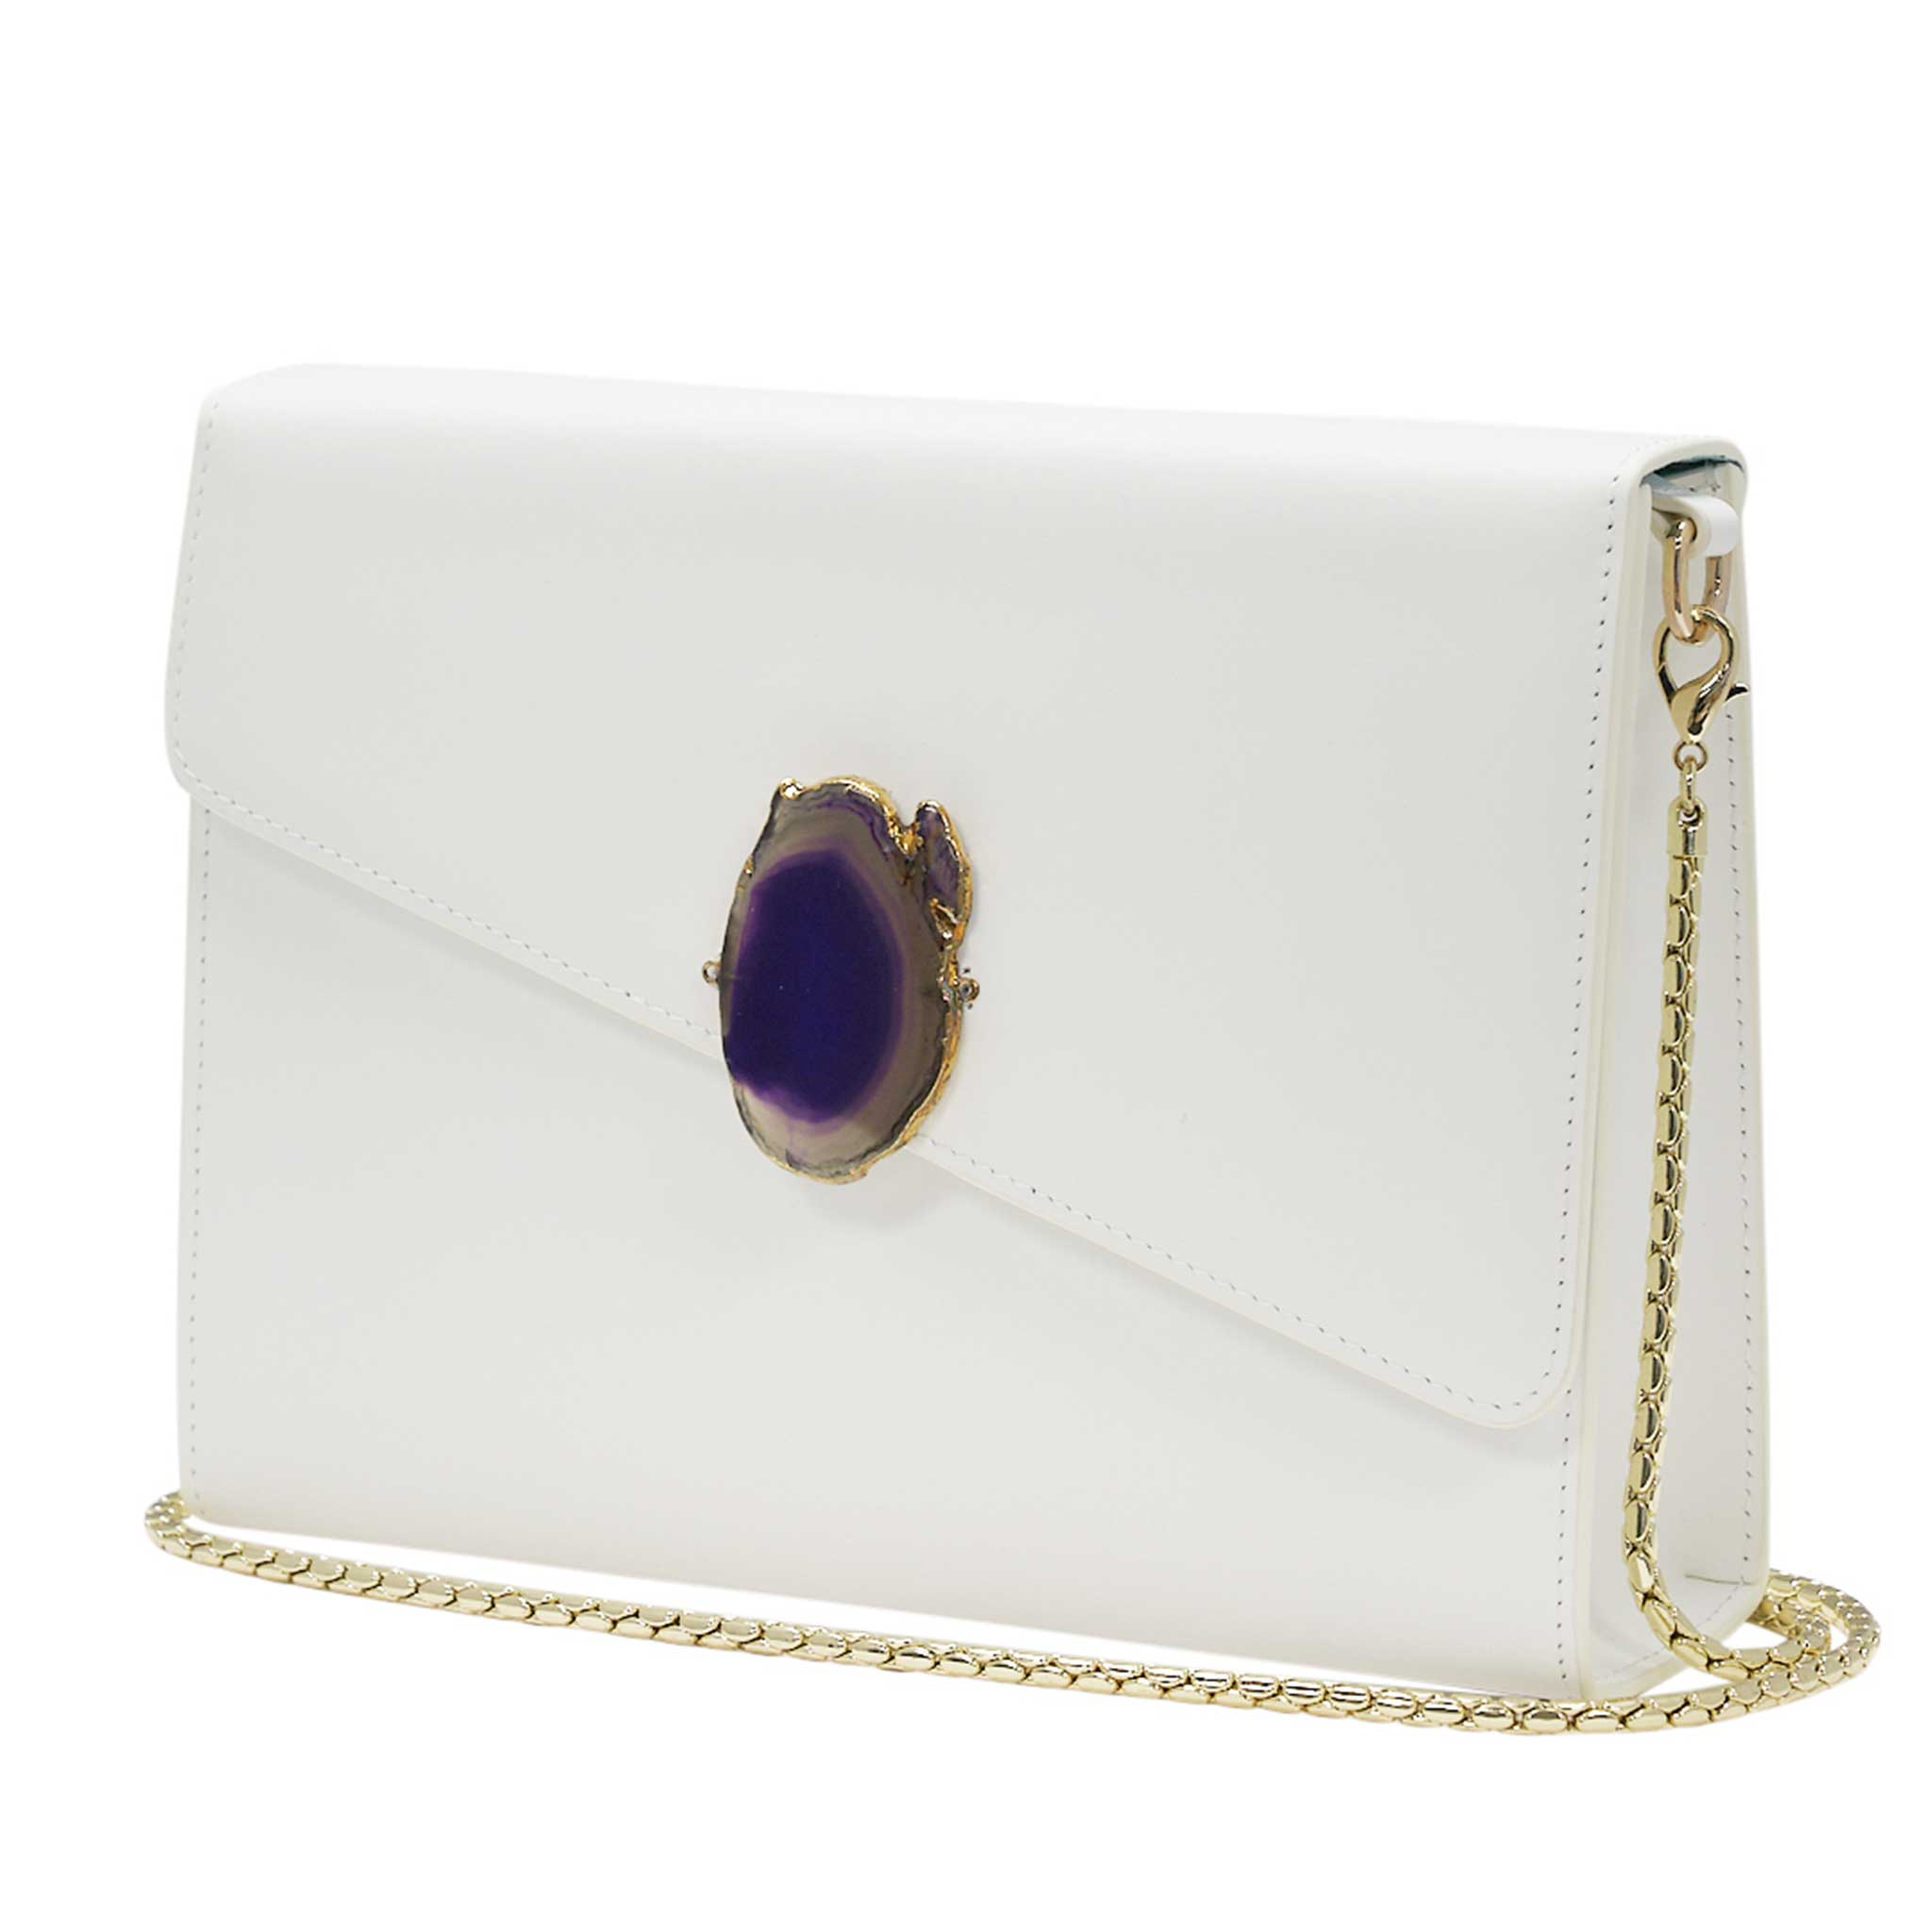 LOVED BAG - MOONSTONE WHITE LEATHER WITH PURPLE AGATE - 1.03.006.016